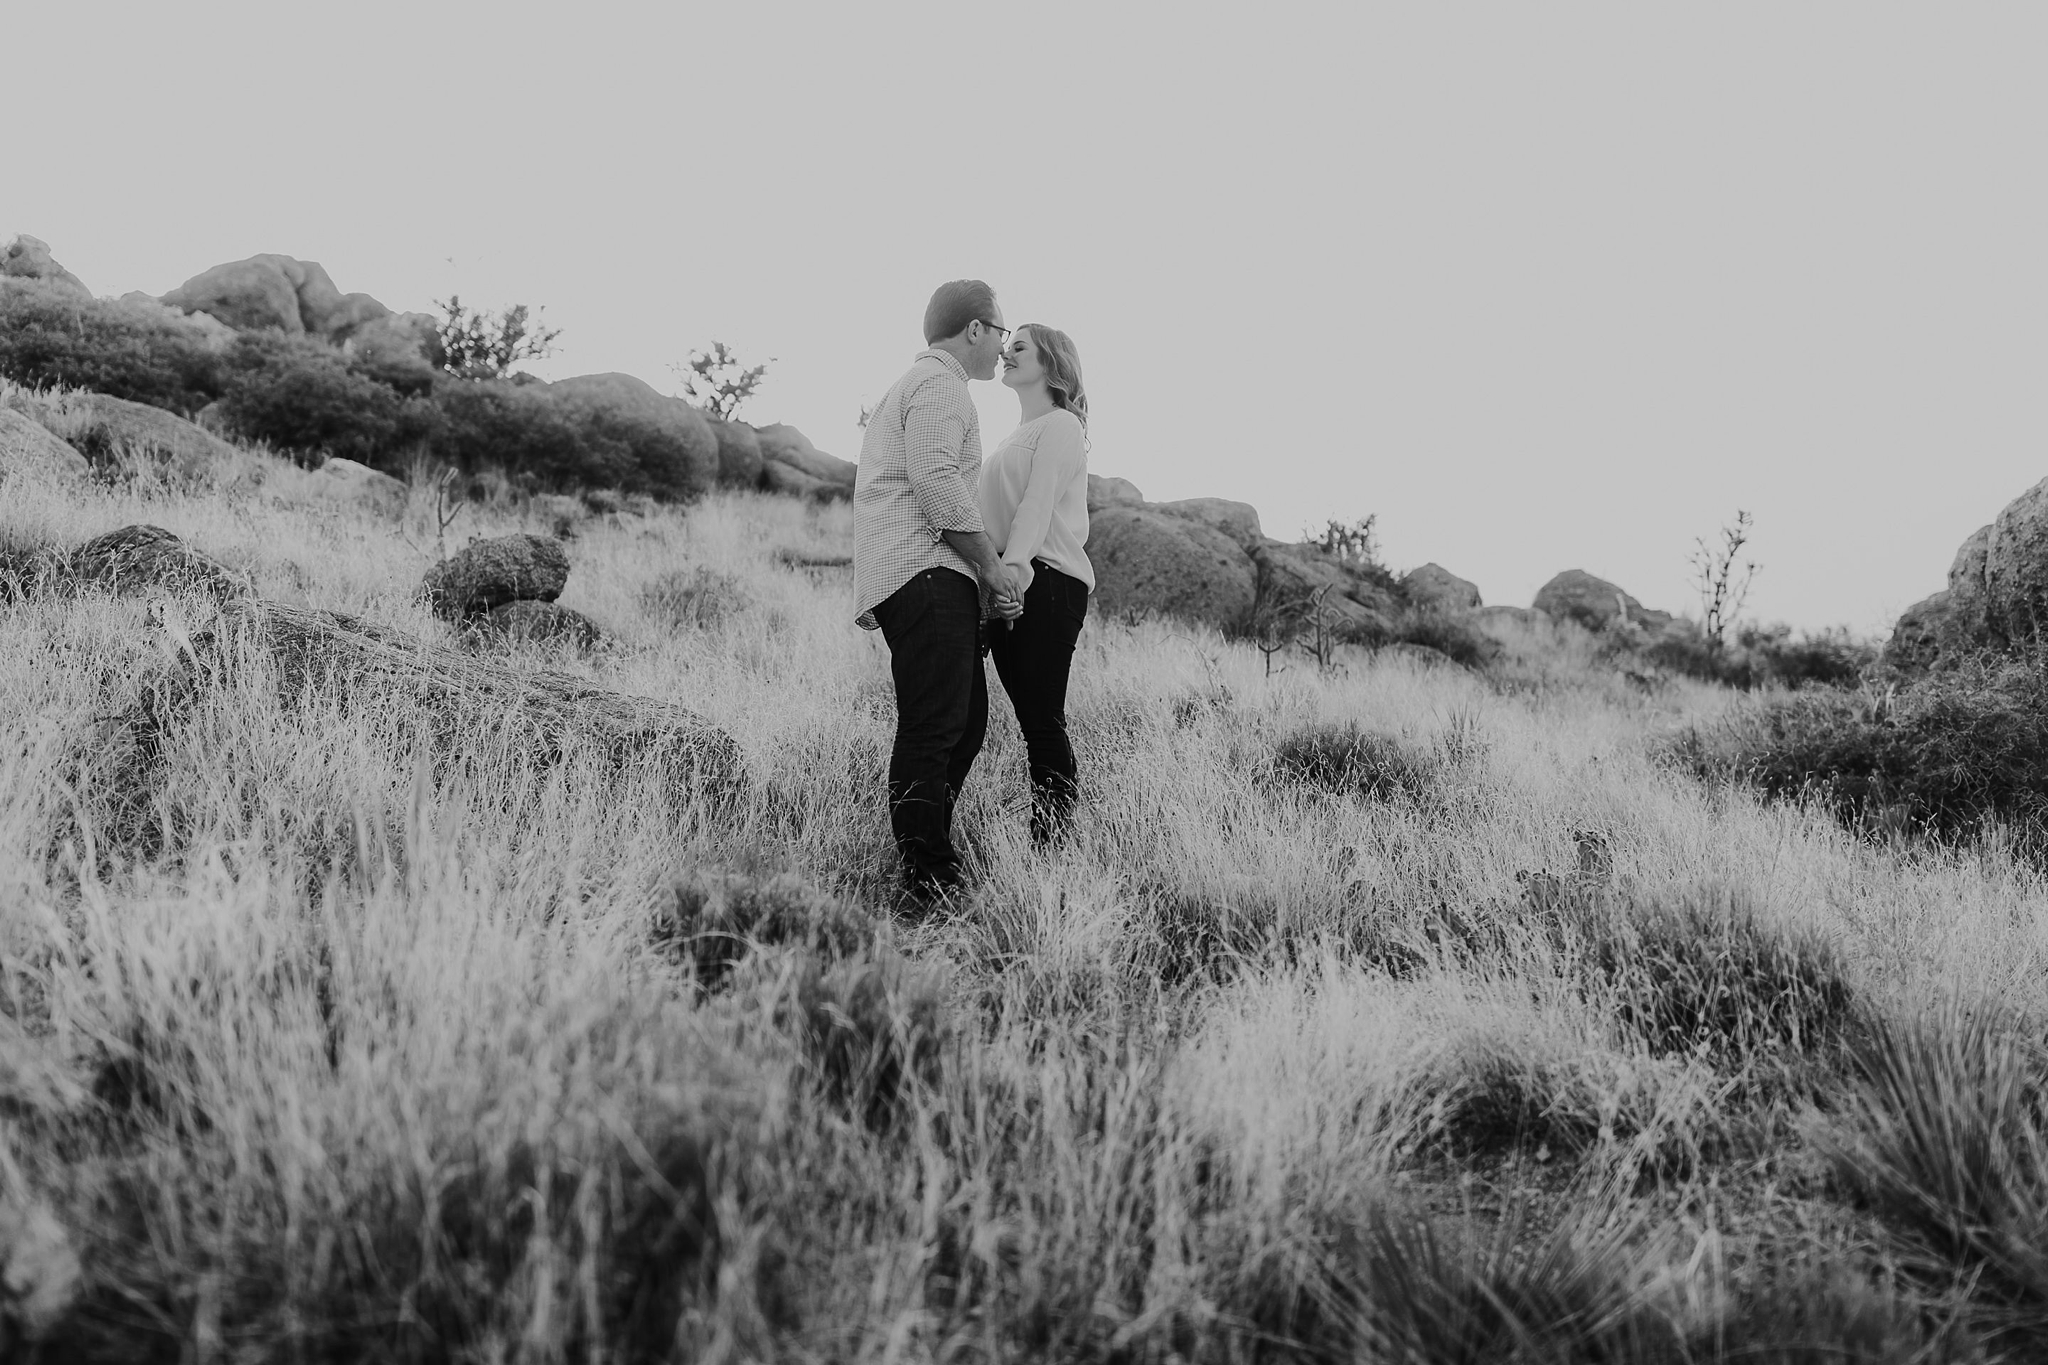 Alicia+lucia+photography+-+albuquerque+wedding+photographer+-+santa+fe+wedding+photography+-+new+mexico+wedding+photographer+-+new+mexico+wedding+-+new+mexico+engagement+-+engagement+photographer+-+mountain+engagement+-+desert+engagement_0012.jpg